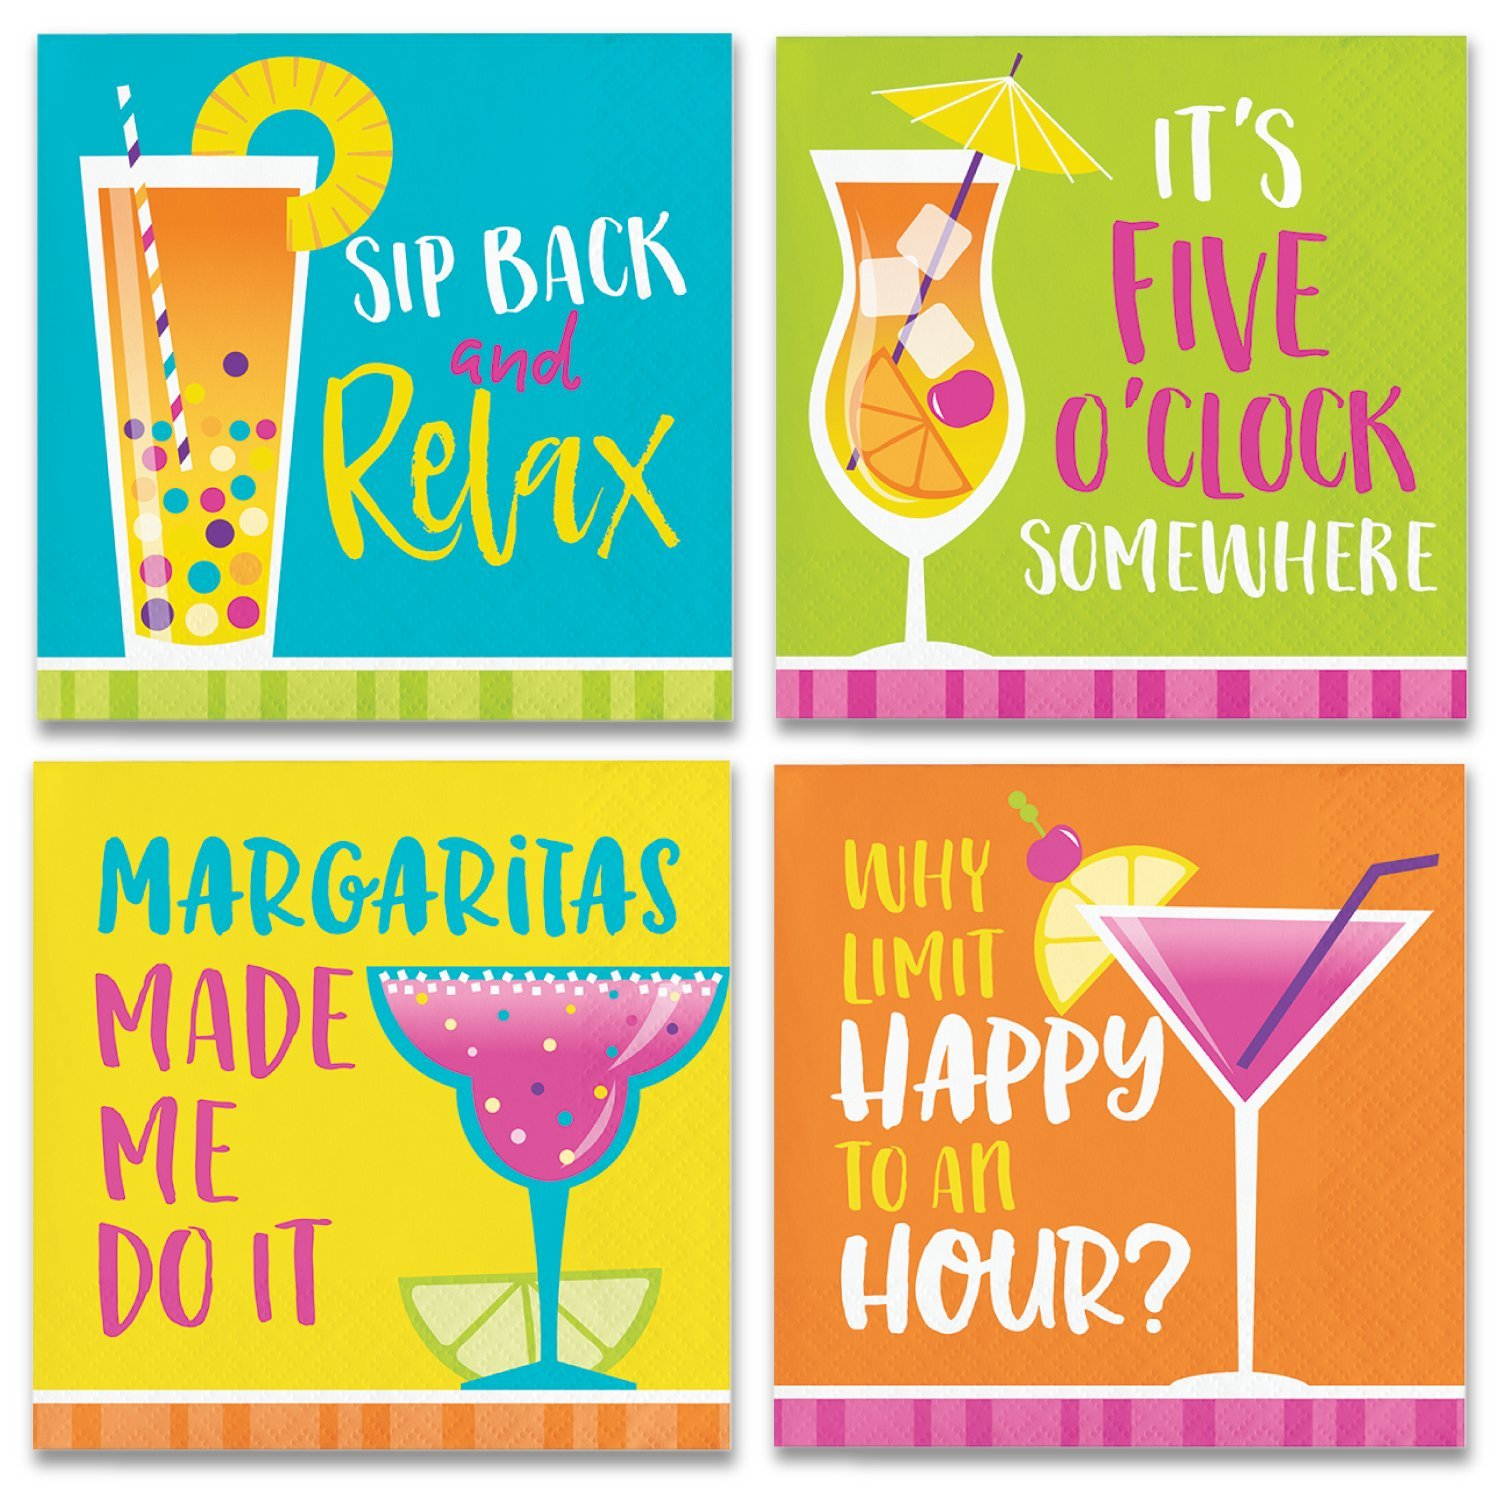 Summertime Cocktail Napkins Variety Pack - 64ct by FAKKOS Design (Image #1)